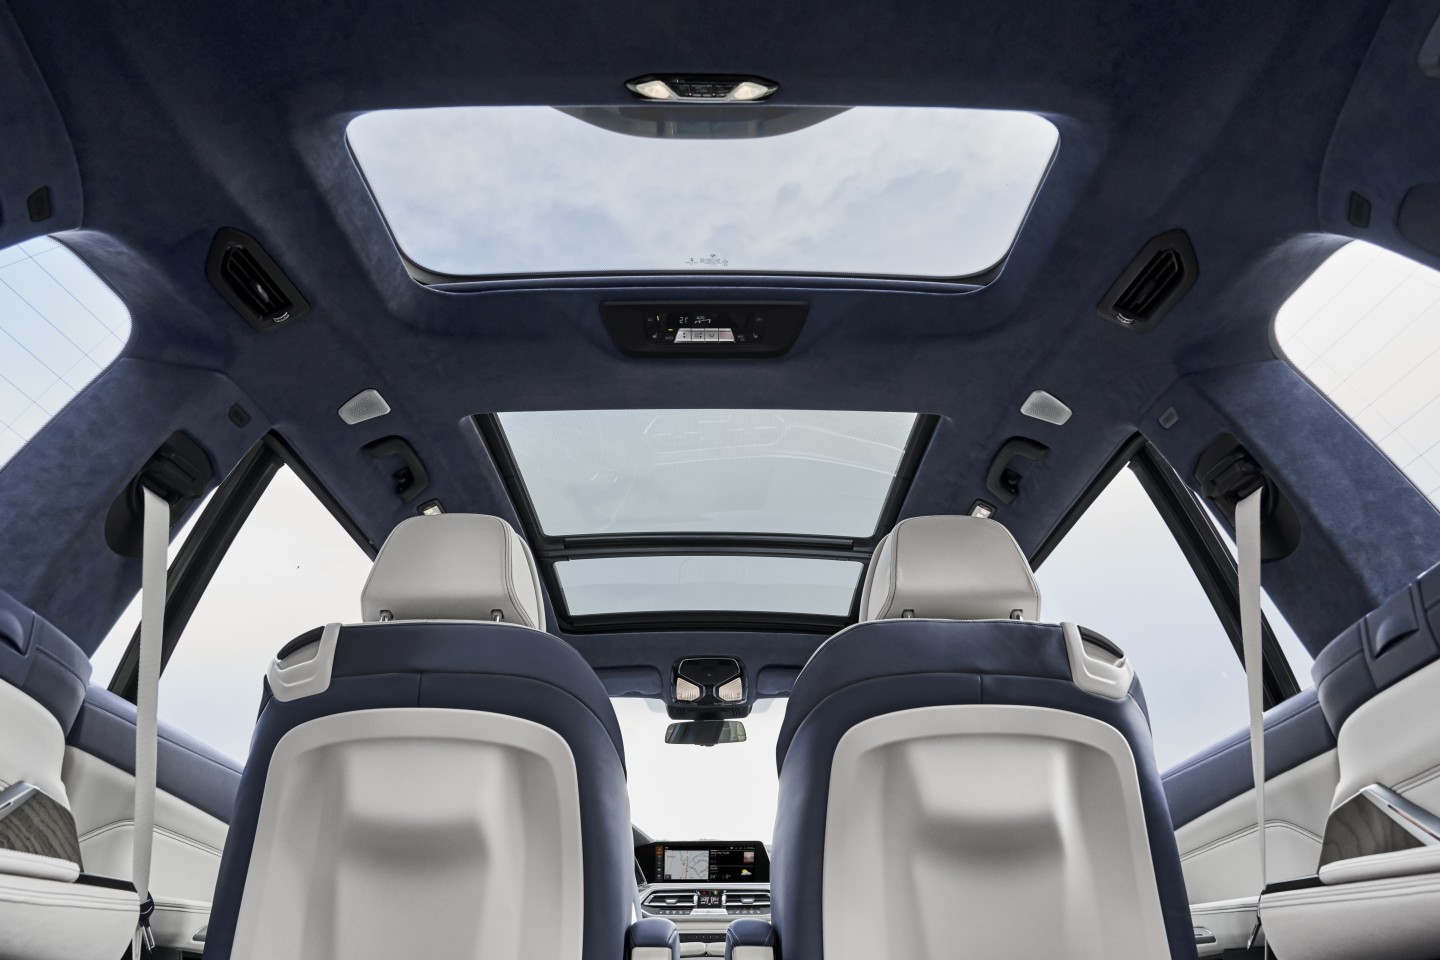 A huge panoramic sunroof is standard in the BMW X7